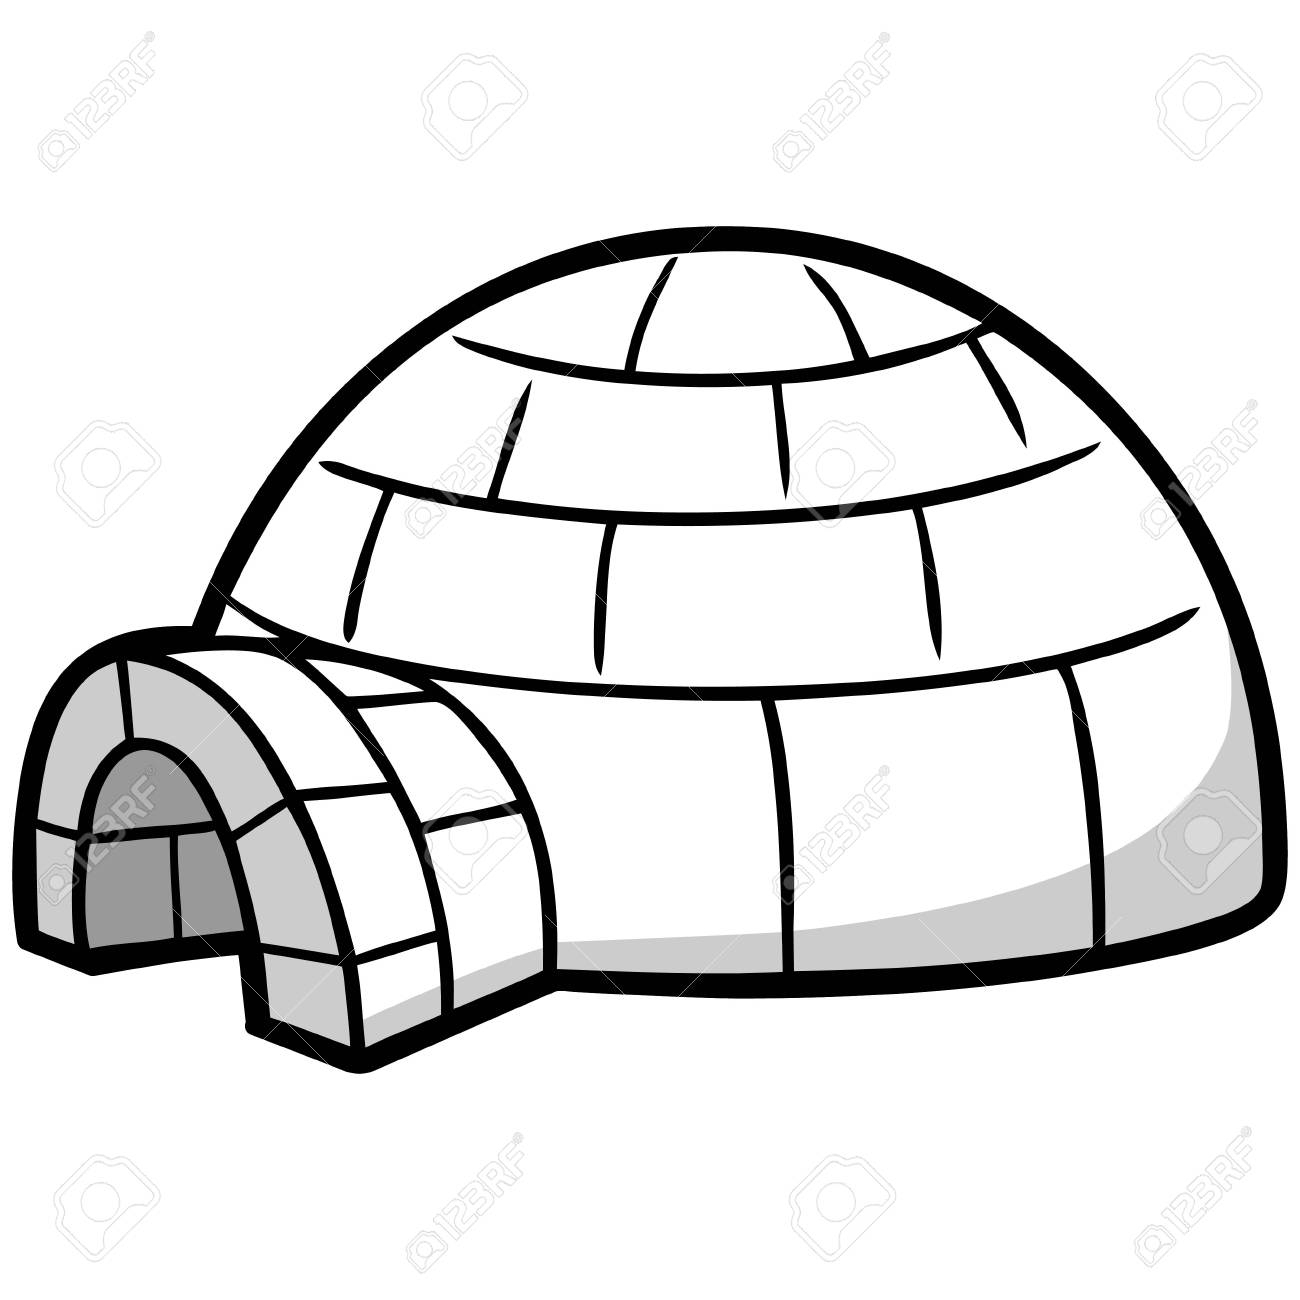 Igloo Drawing At Getdrawings | Free Download à Coloriage Igloo